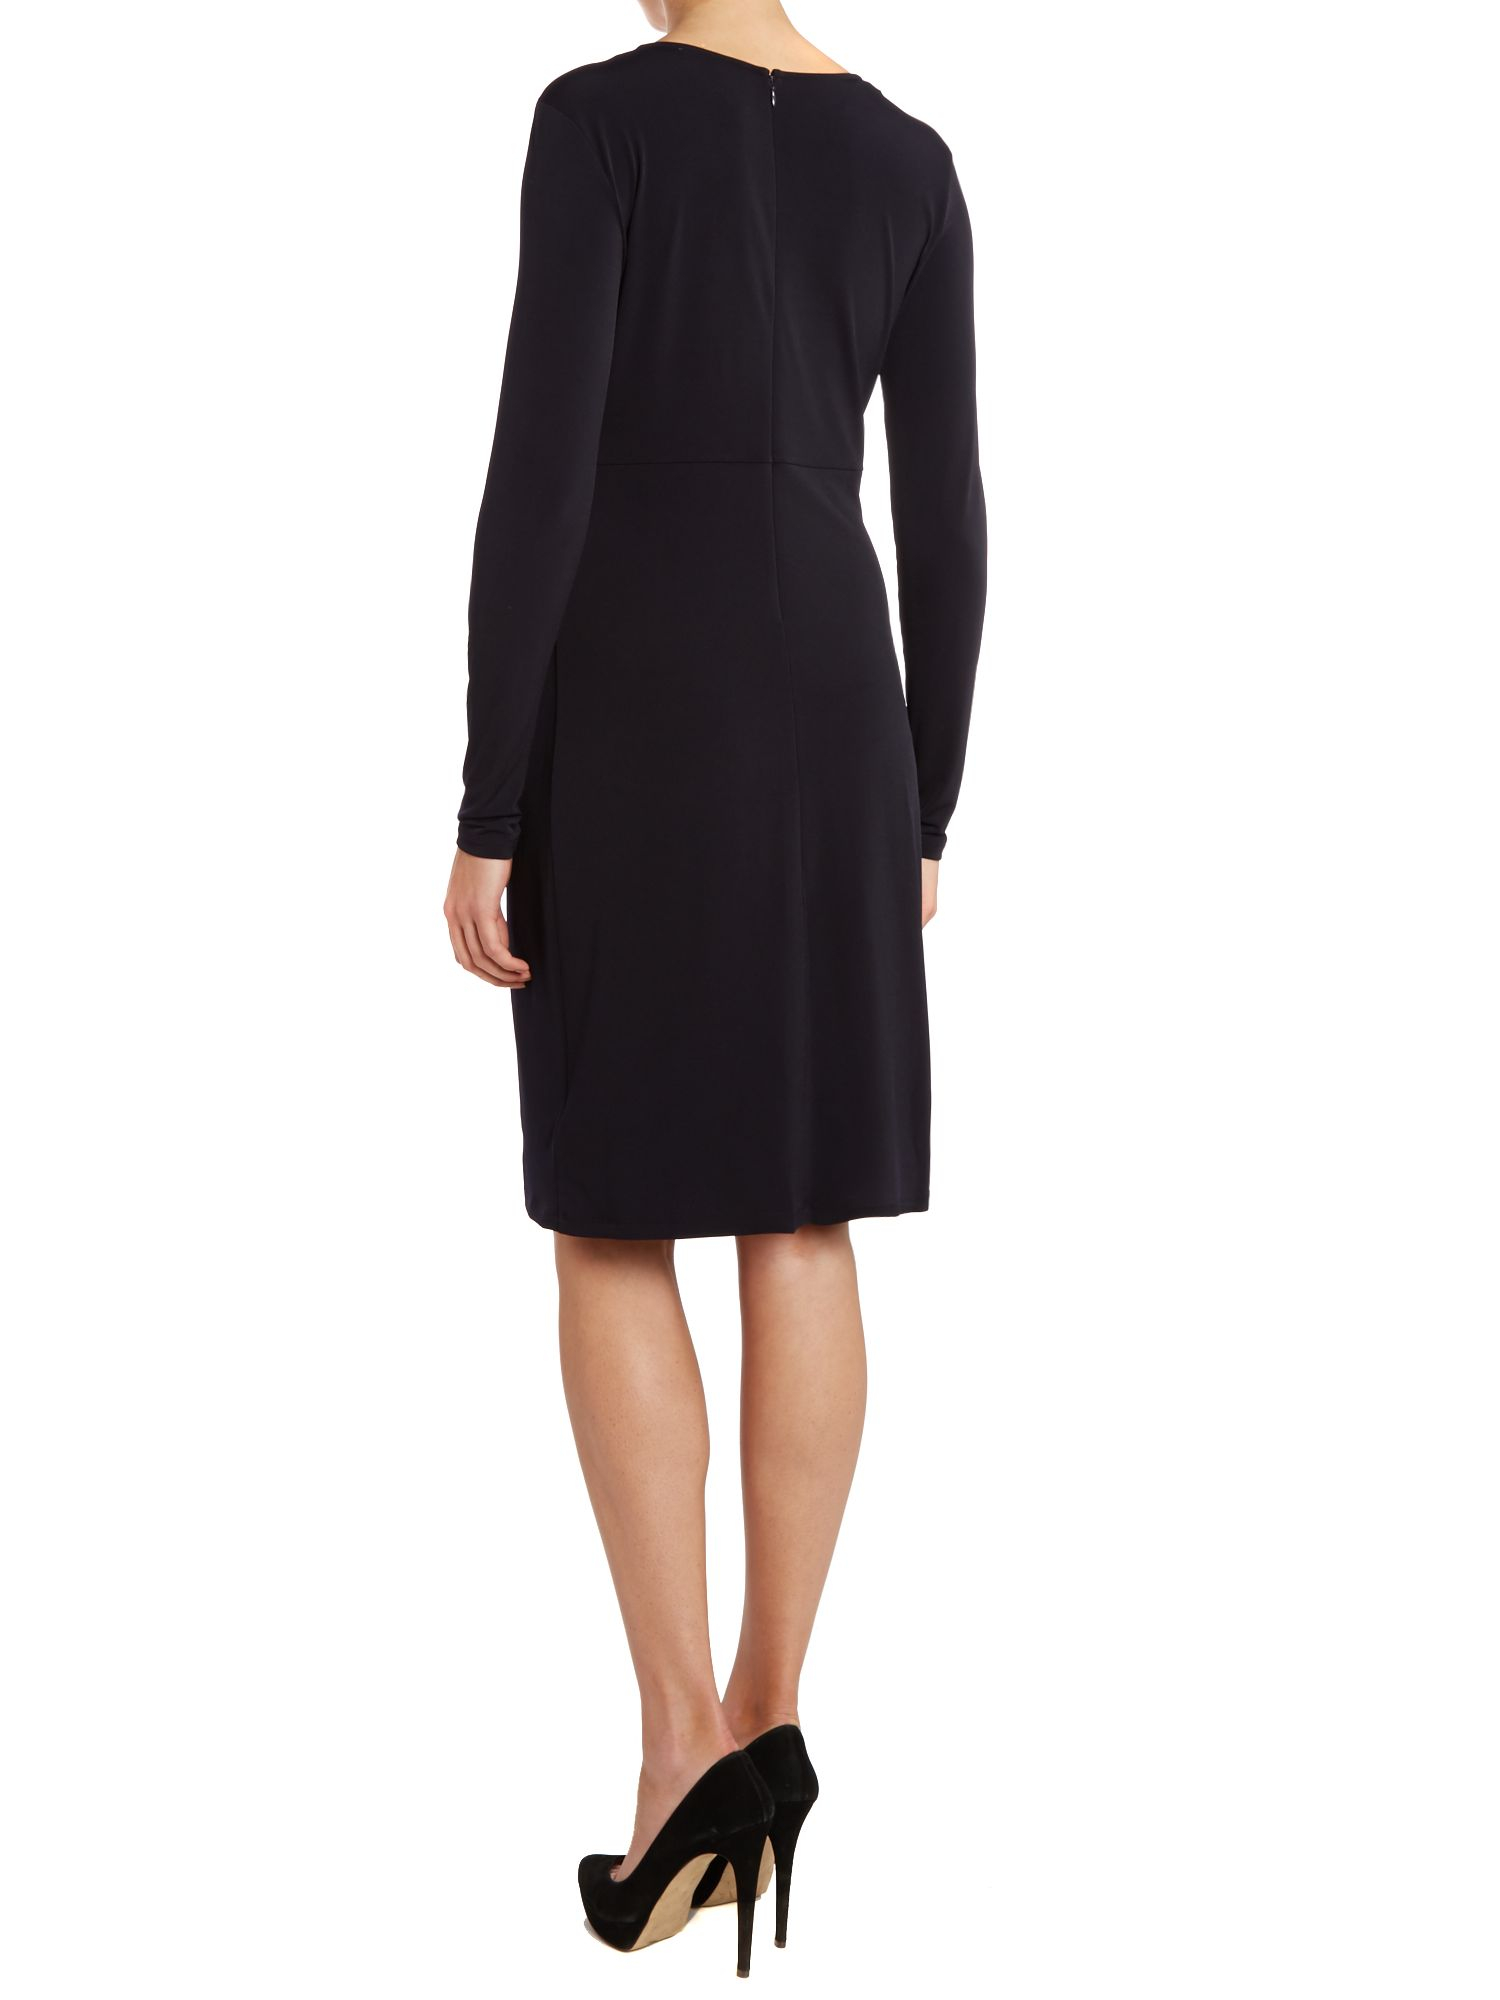 Michael Kors Pleated Front Dress With Buckle Detail In